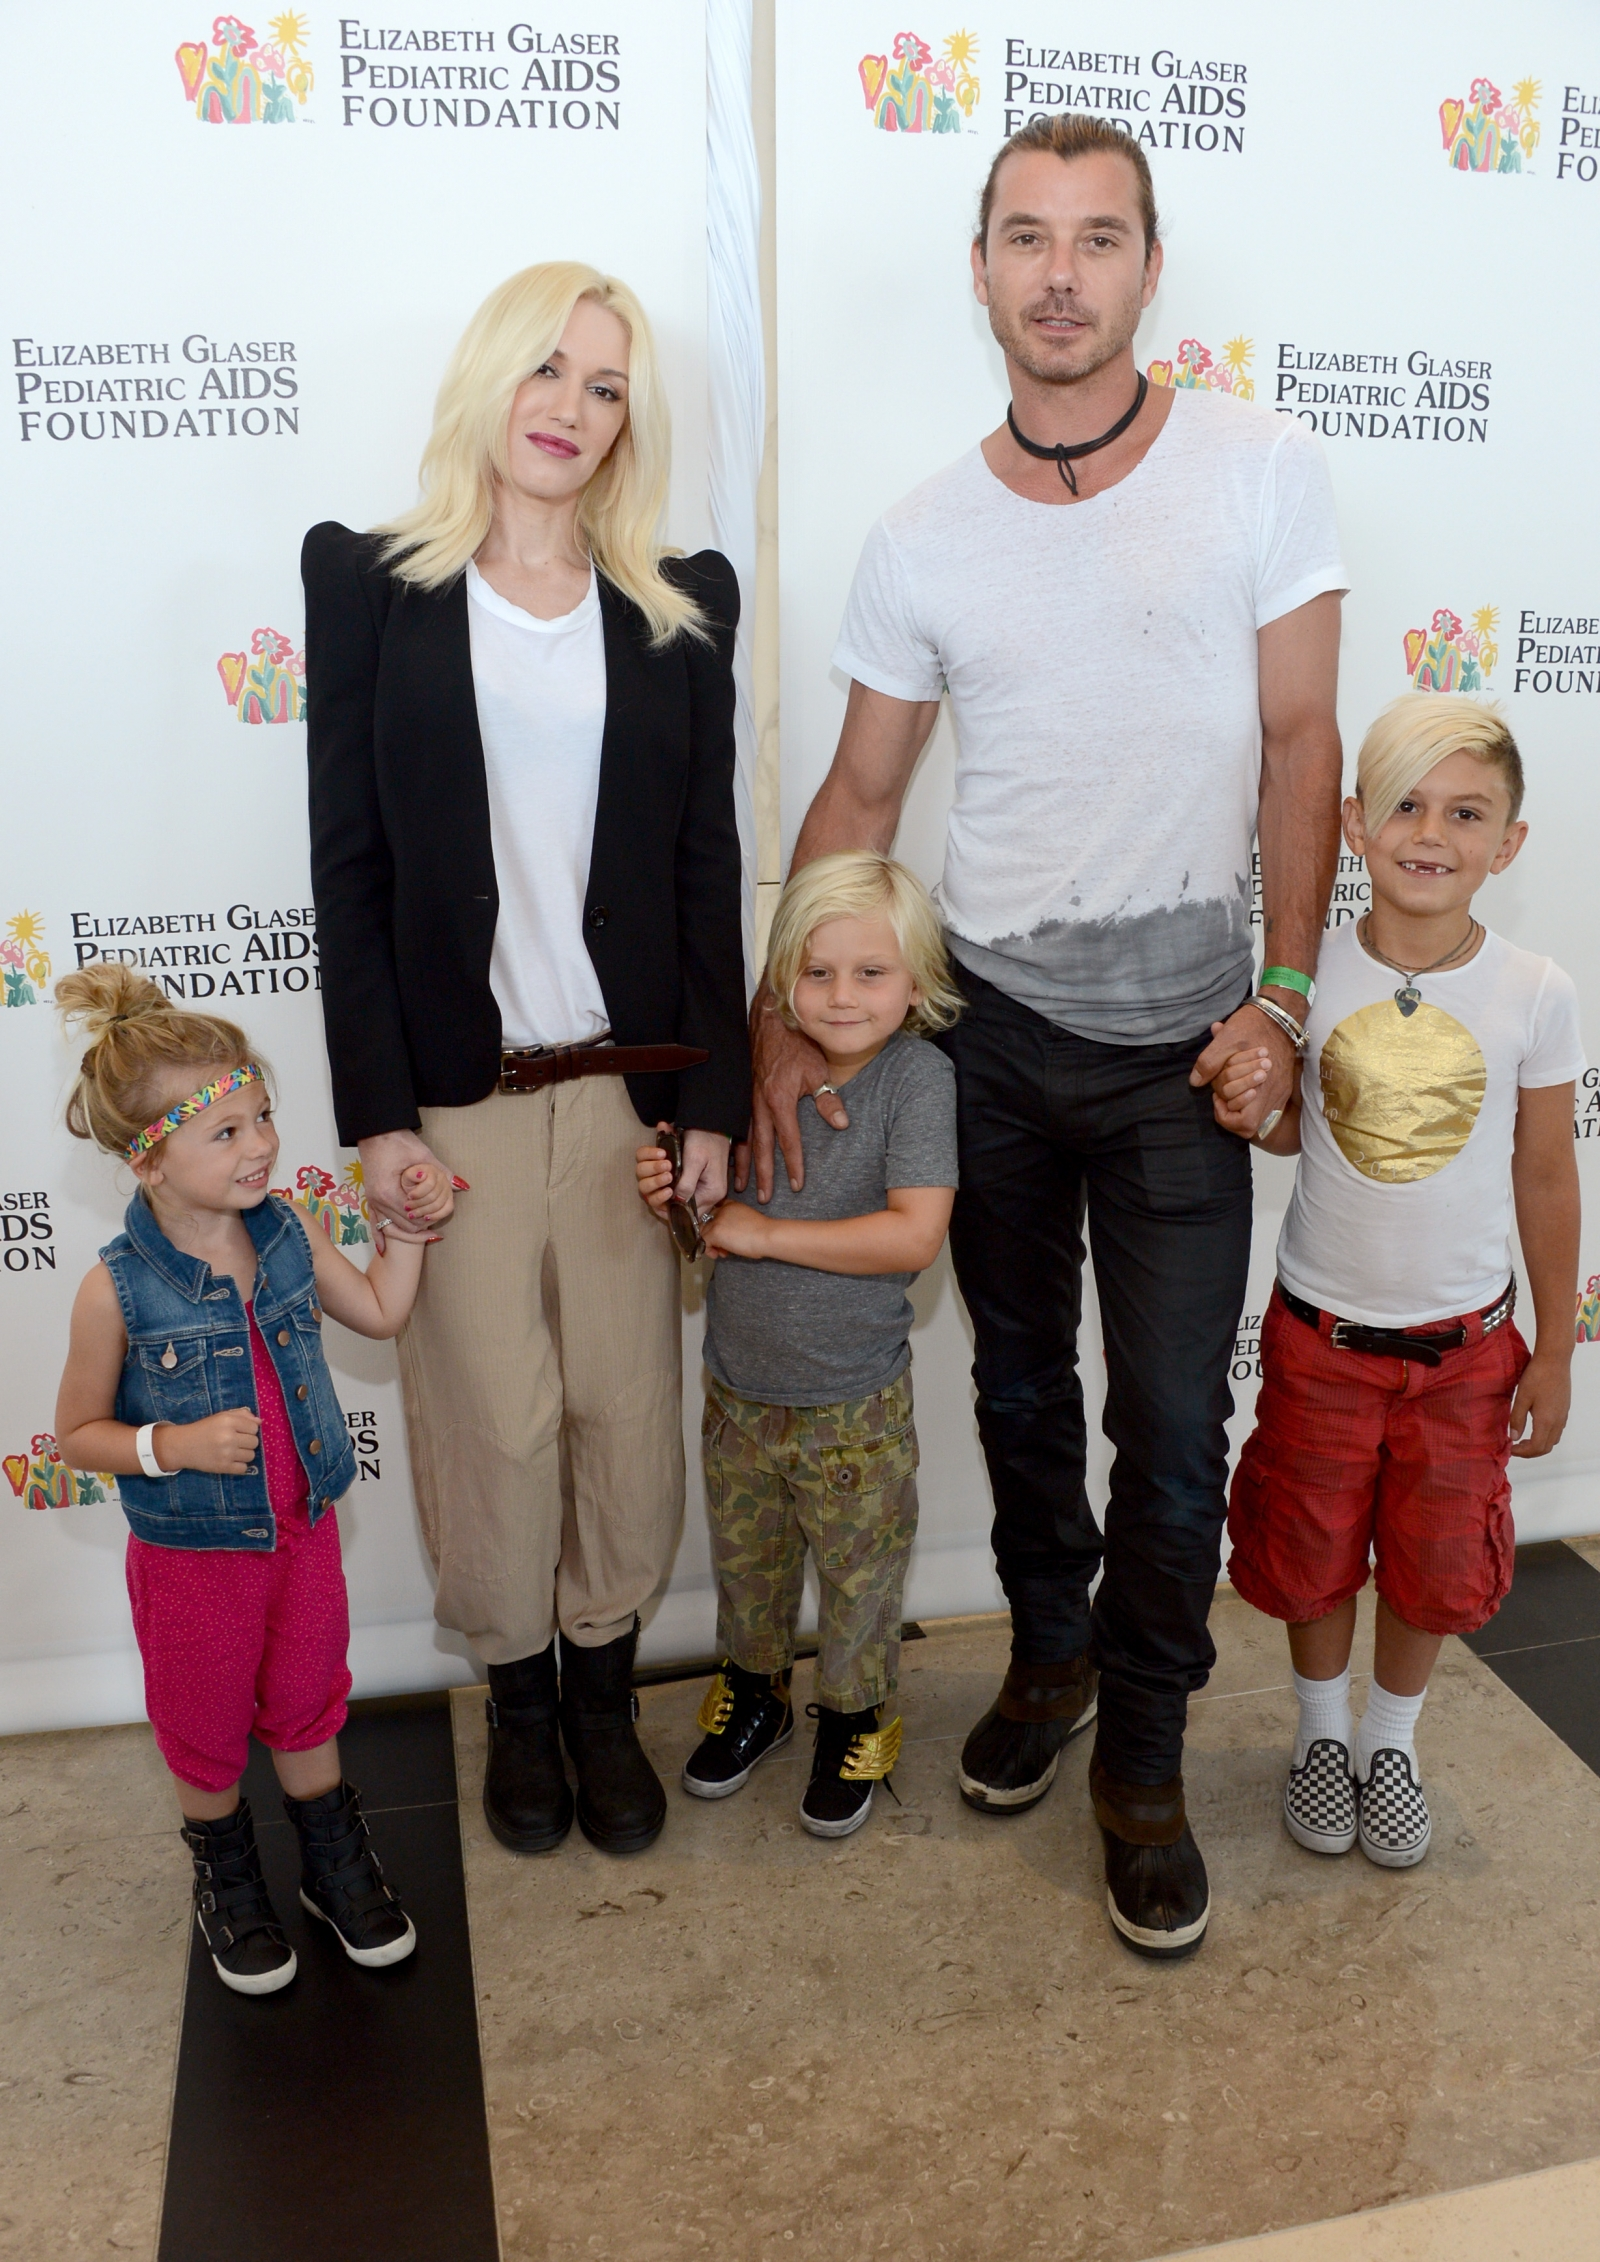 Gwen Stefani, Gavin Rossdale and their children